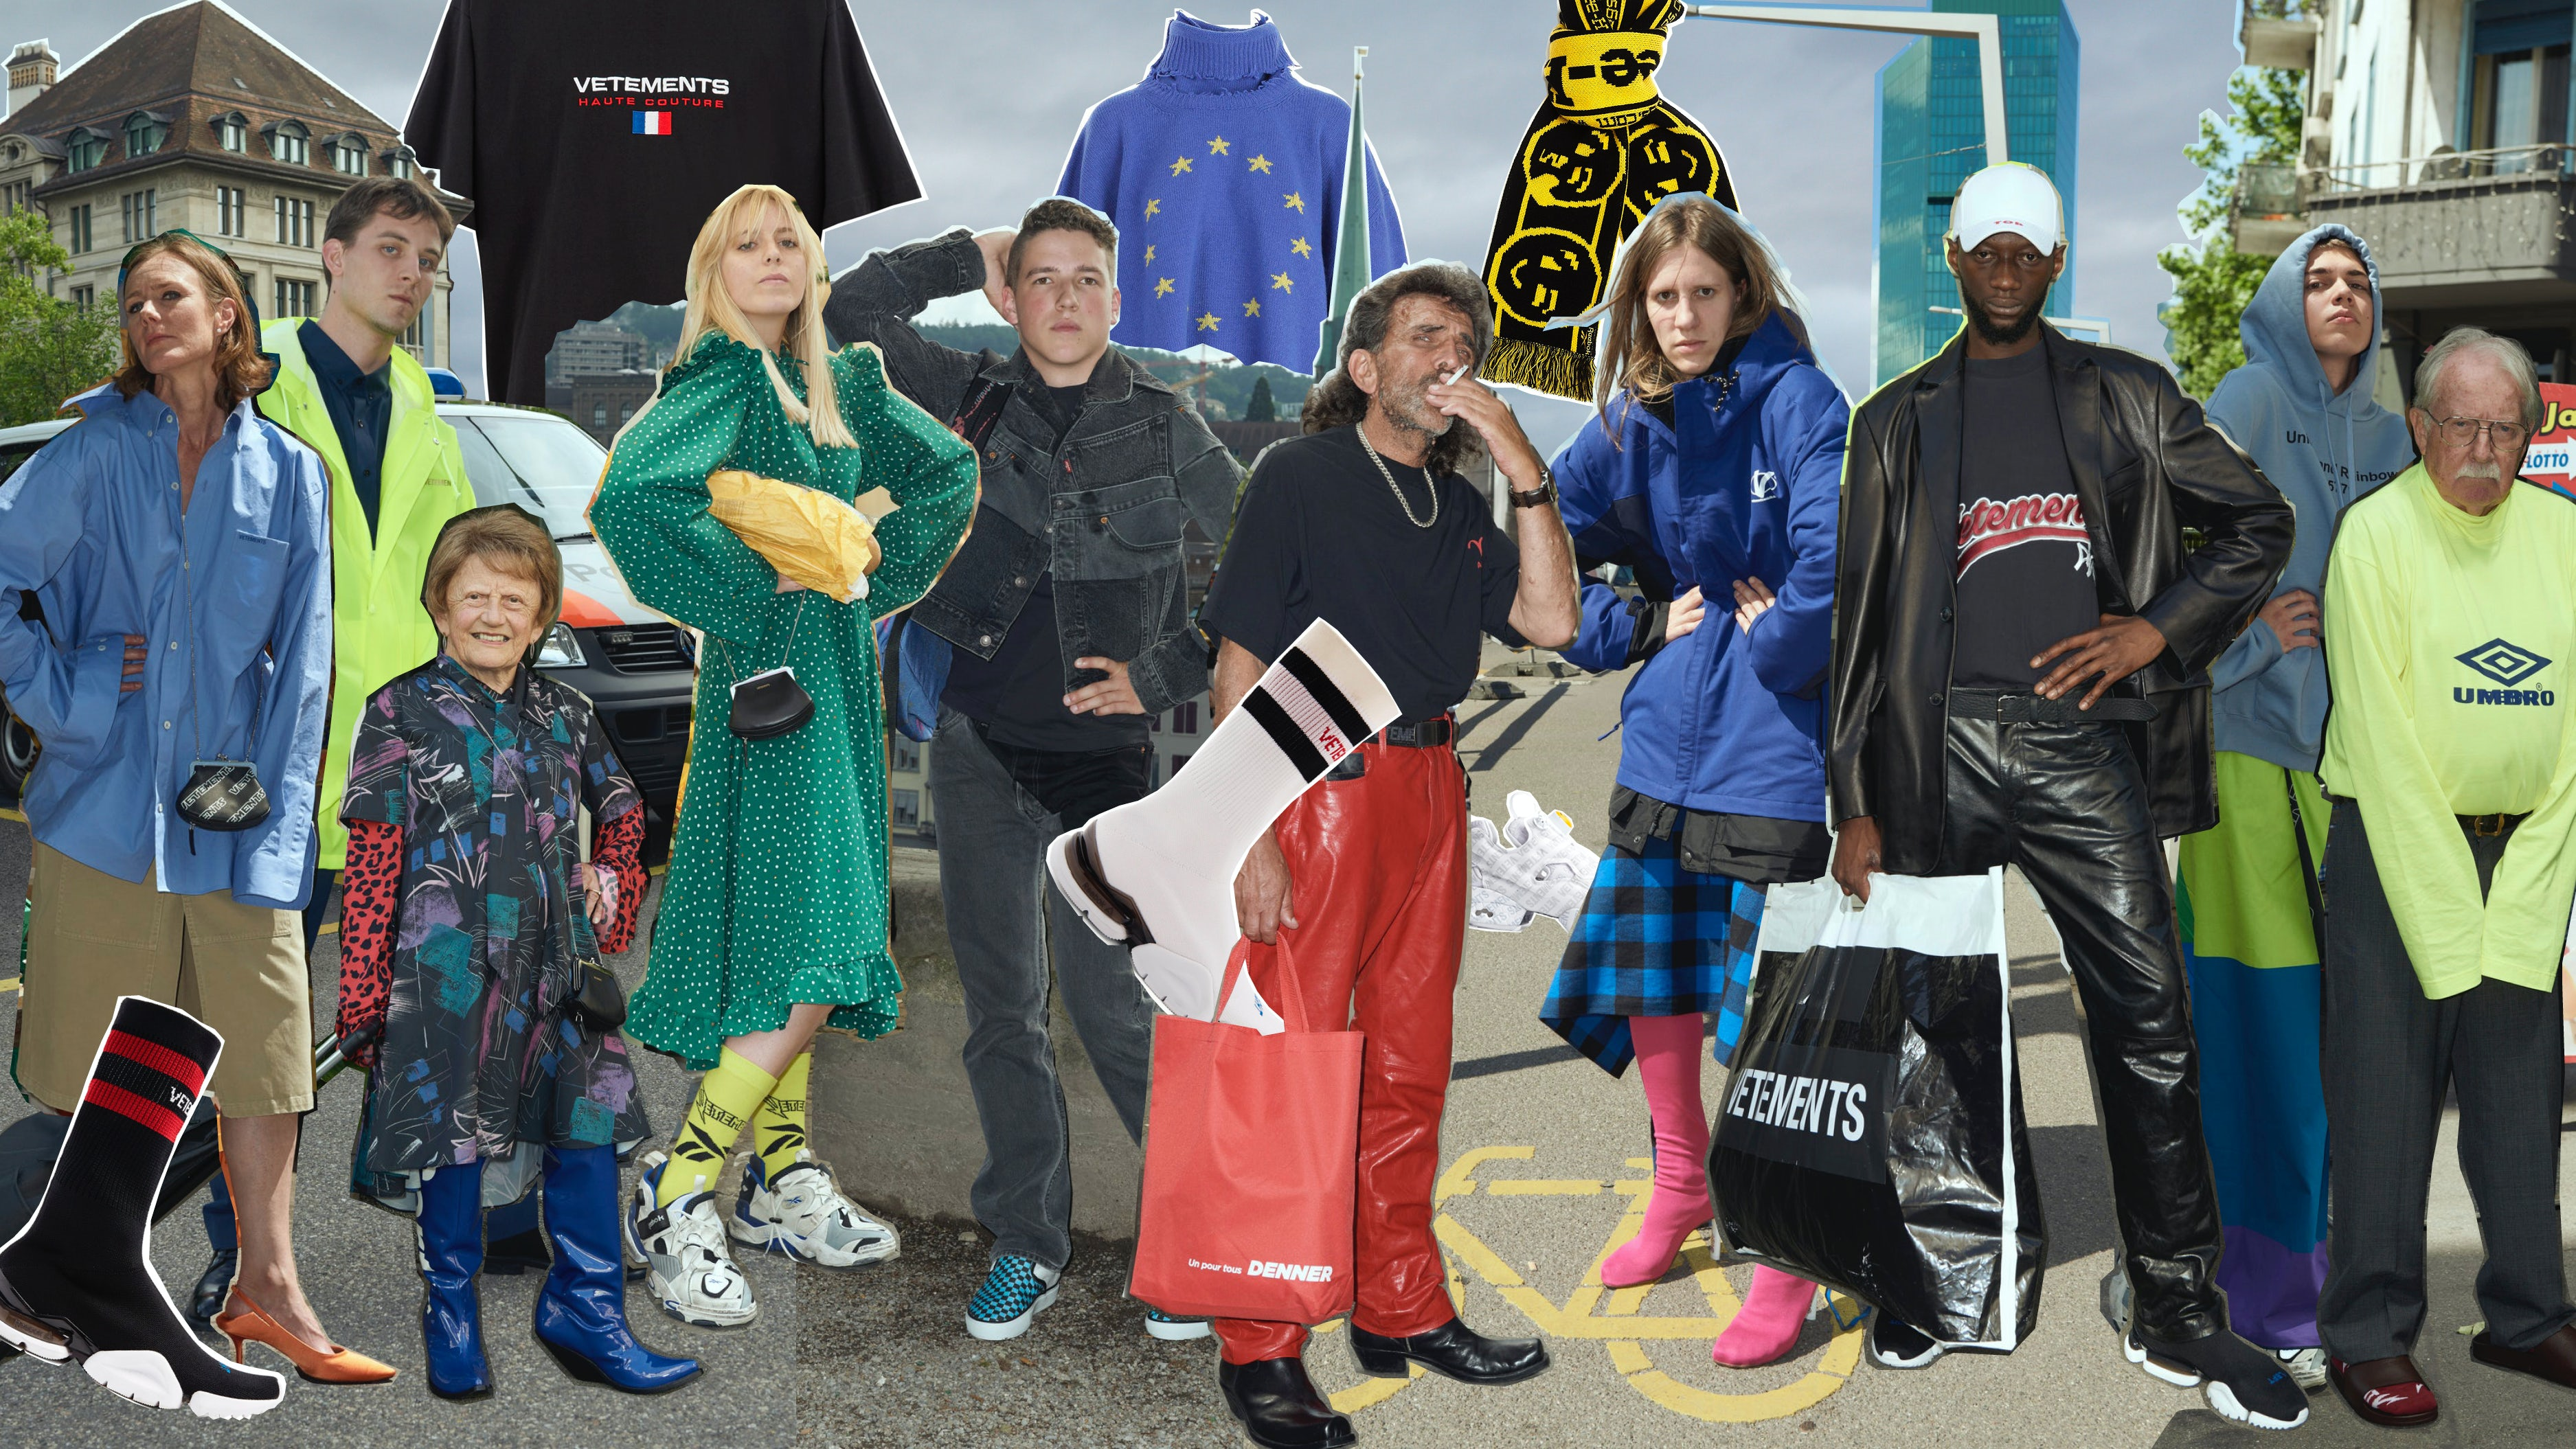 Article cover of The Truth About Vetements